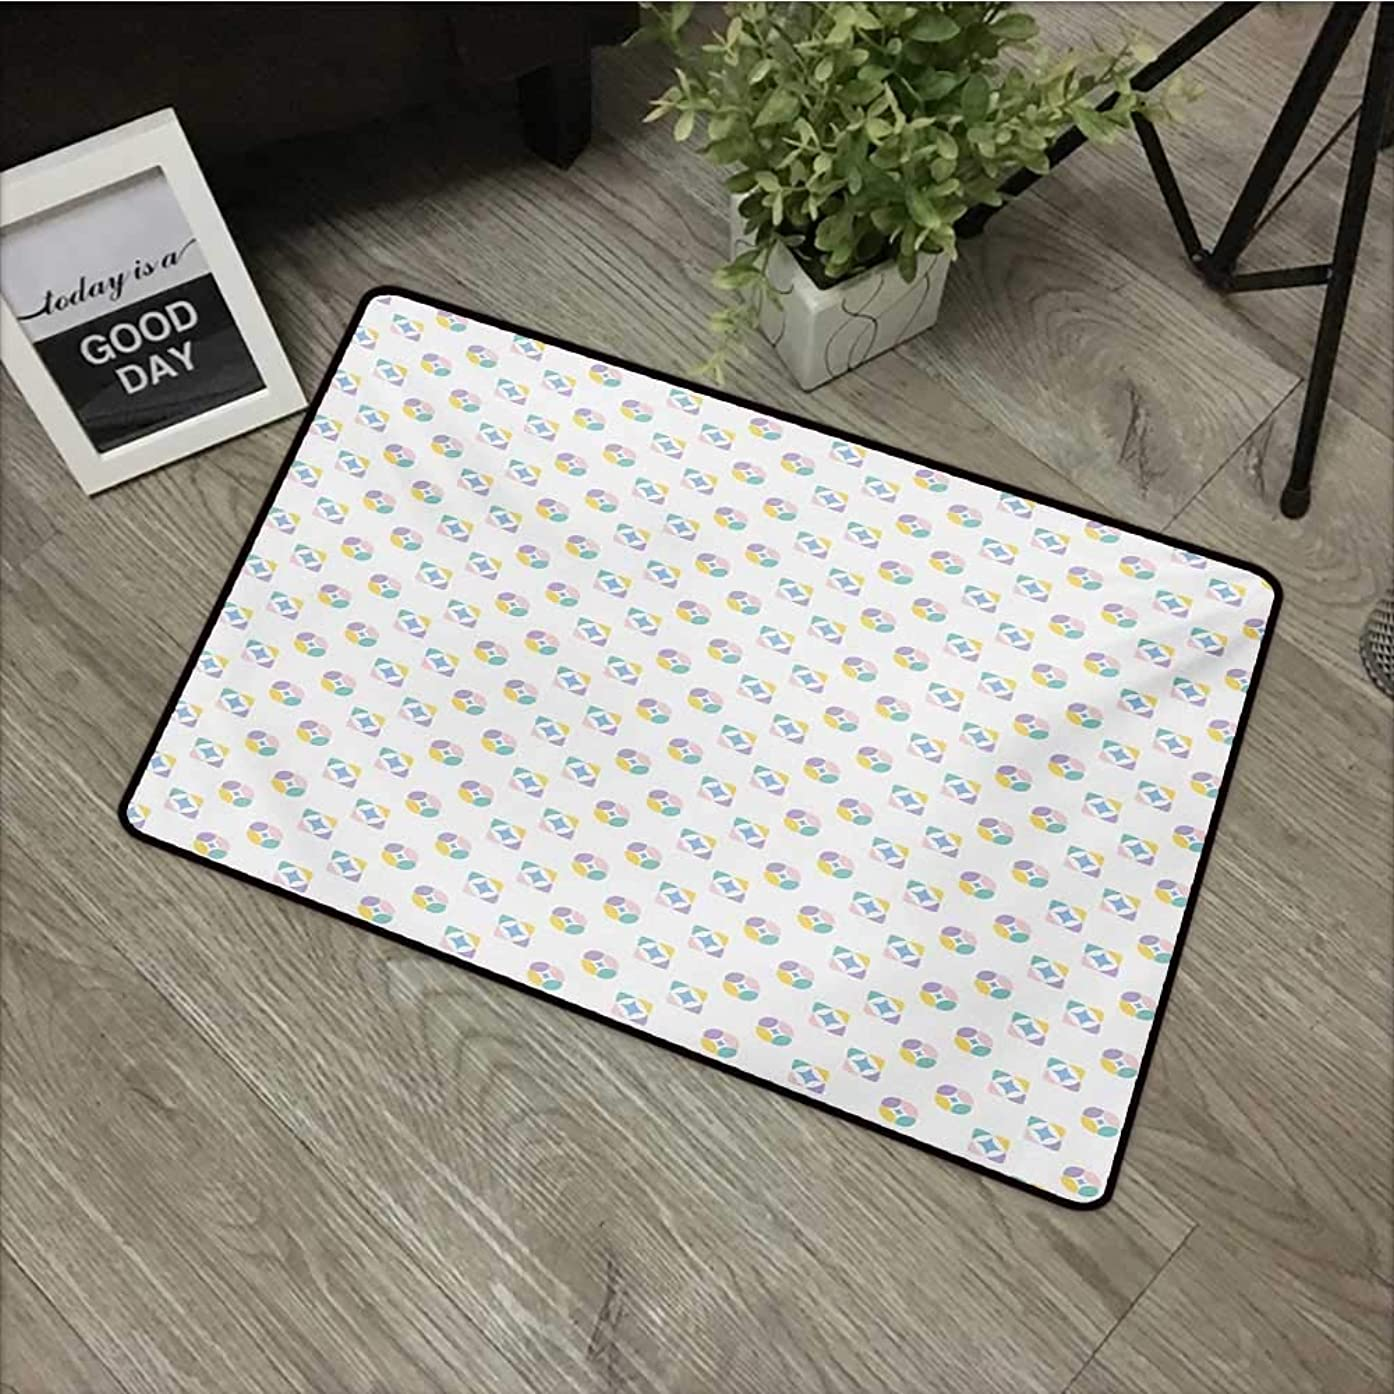 Square Door mat W24 x L35 INCH Modern,Abstract Geometric Icons Soft Toned Kaleidoscope Forms Motif Design,Lavender Pink Blue Yellow Non-Slip, with Non-Slip Backing,Non-Slip Door Mat Carpet